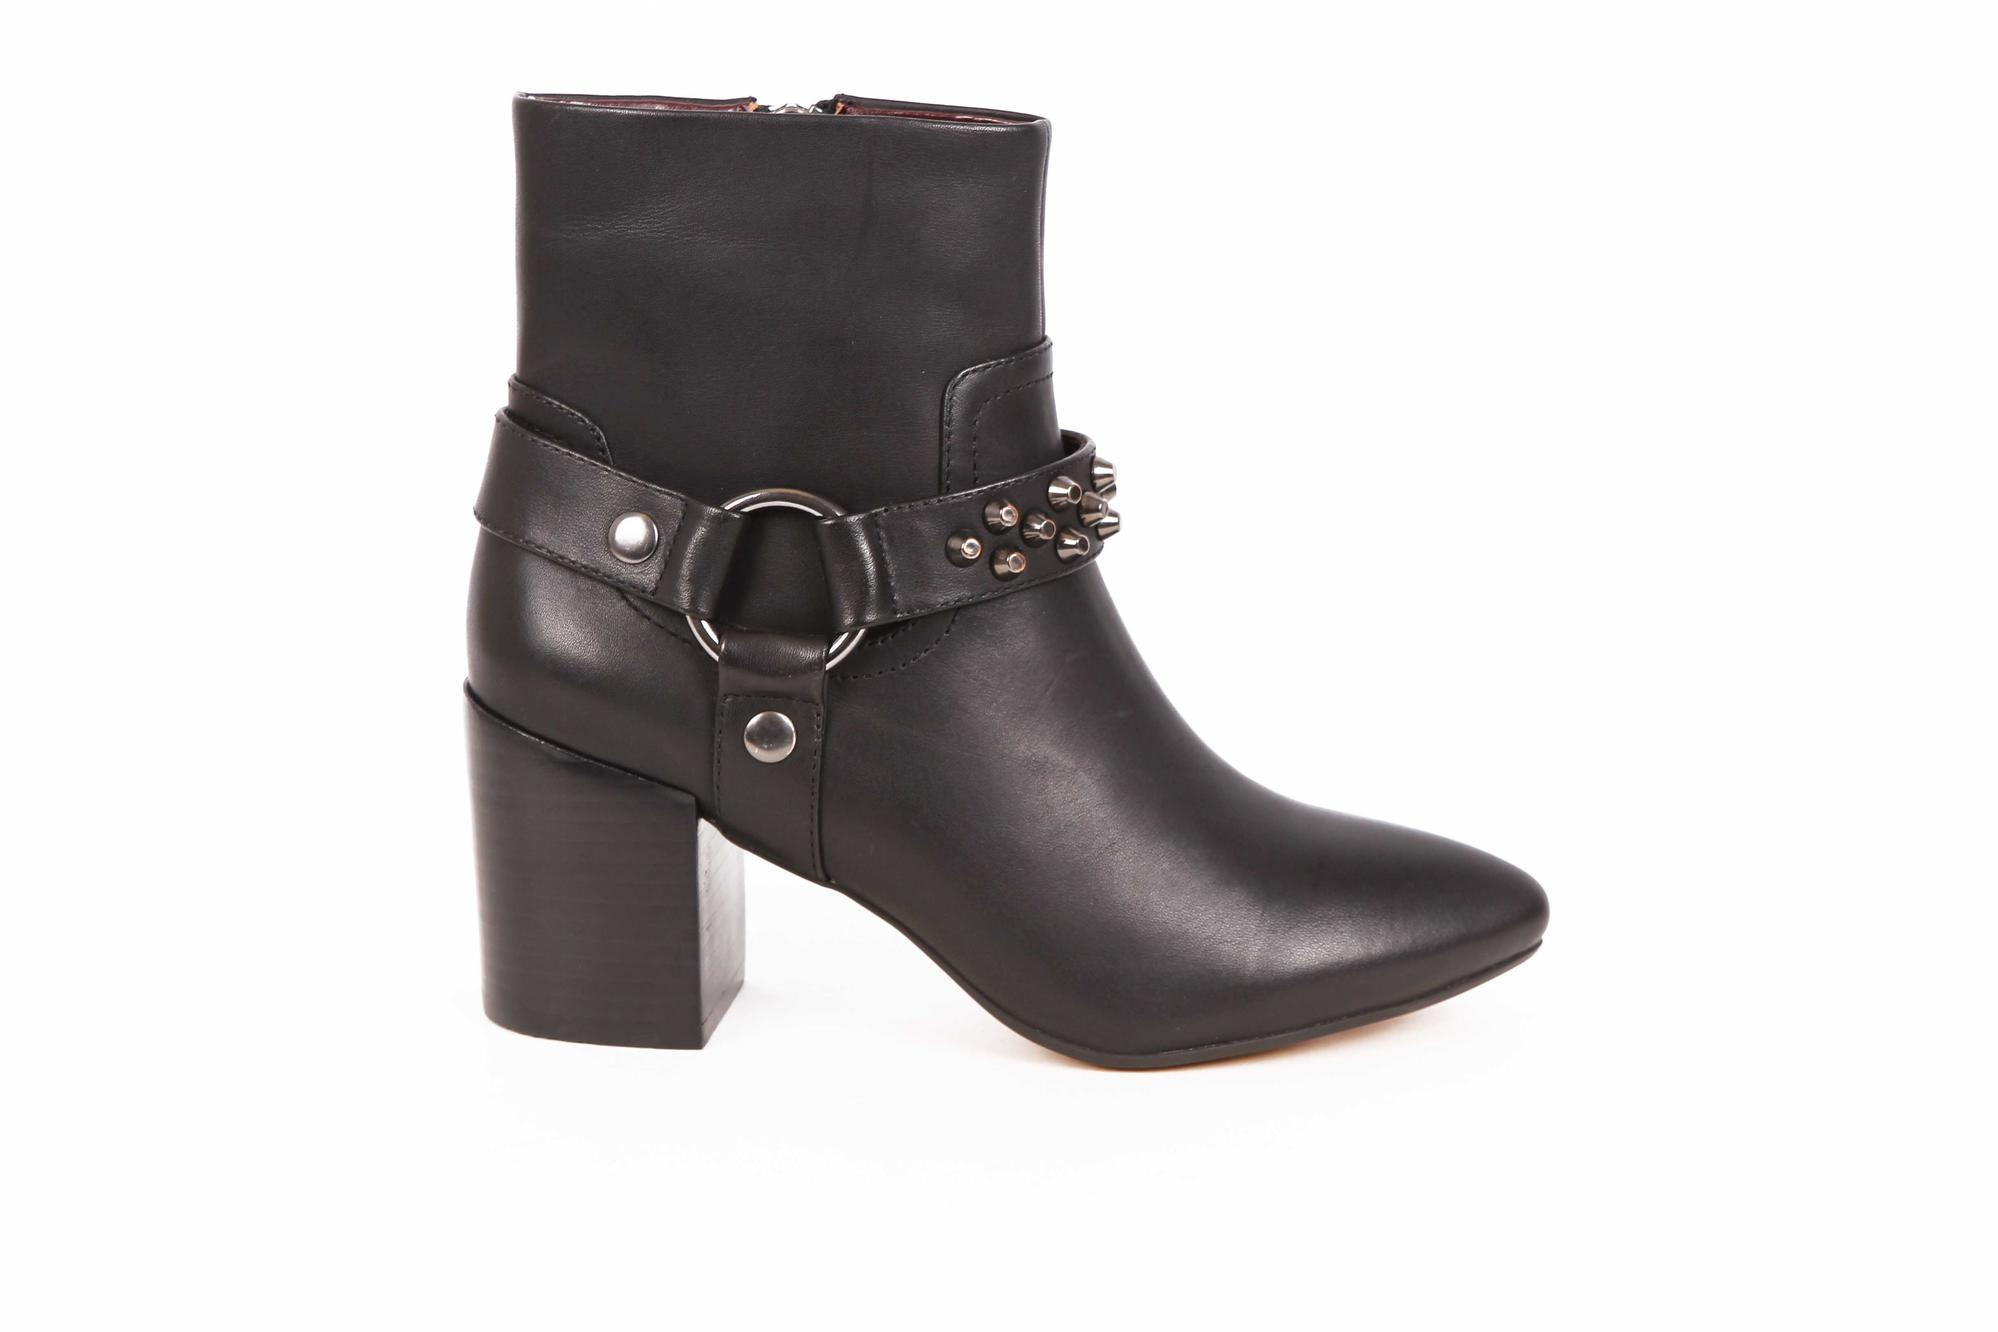 Moto Style: The Studded Bootie